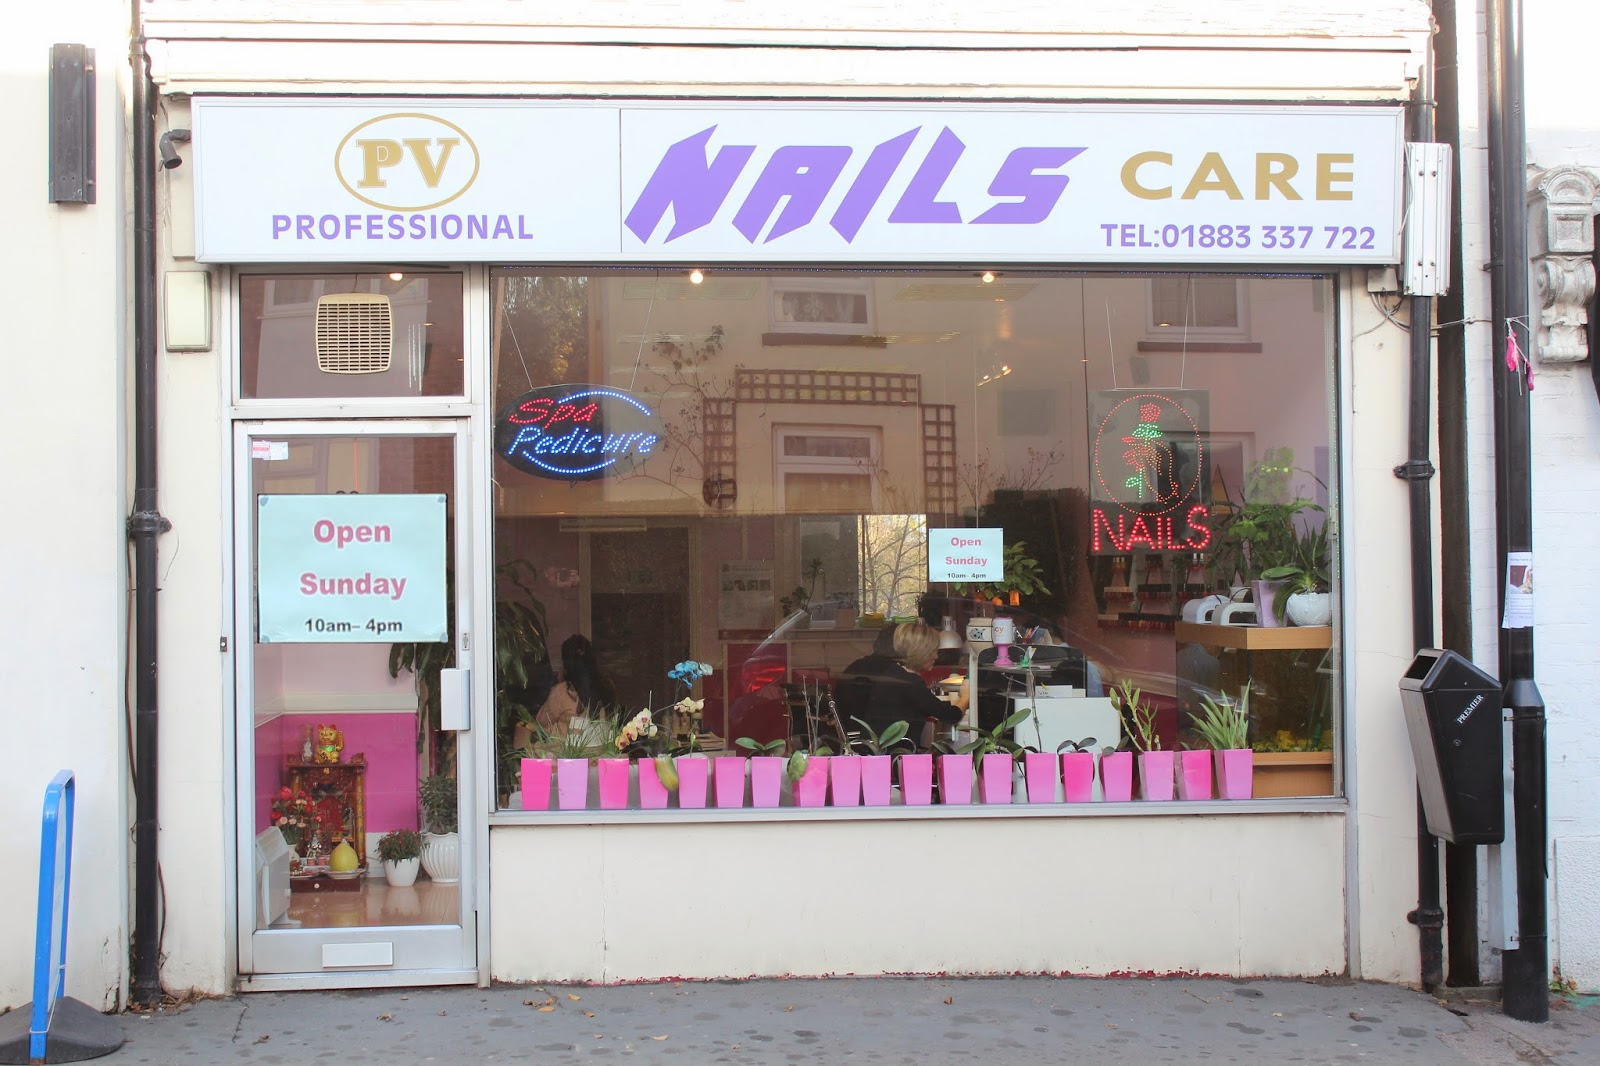 P V Nailcare, 8 Westway, Caterham, Reviews and Appointments ...